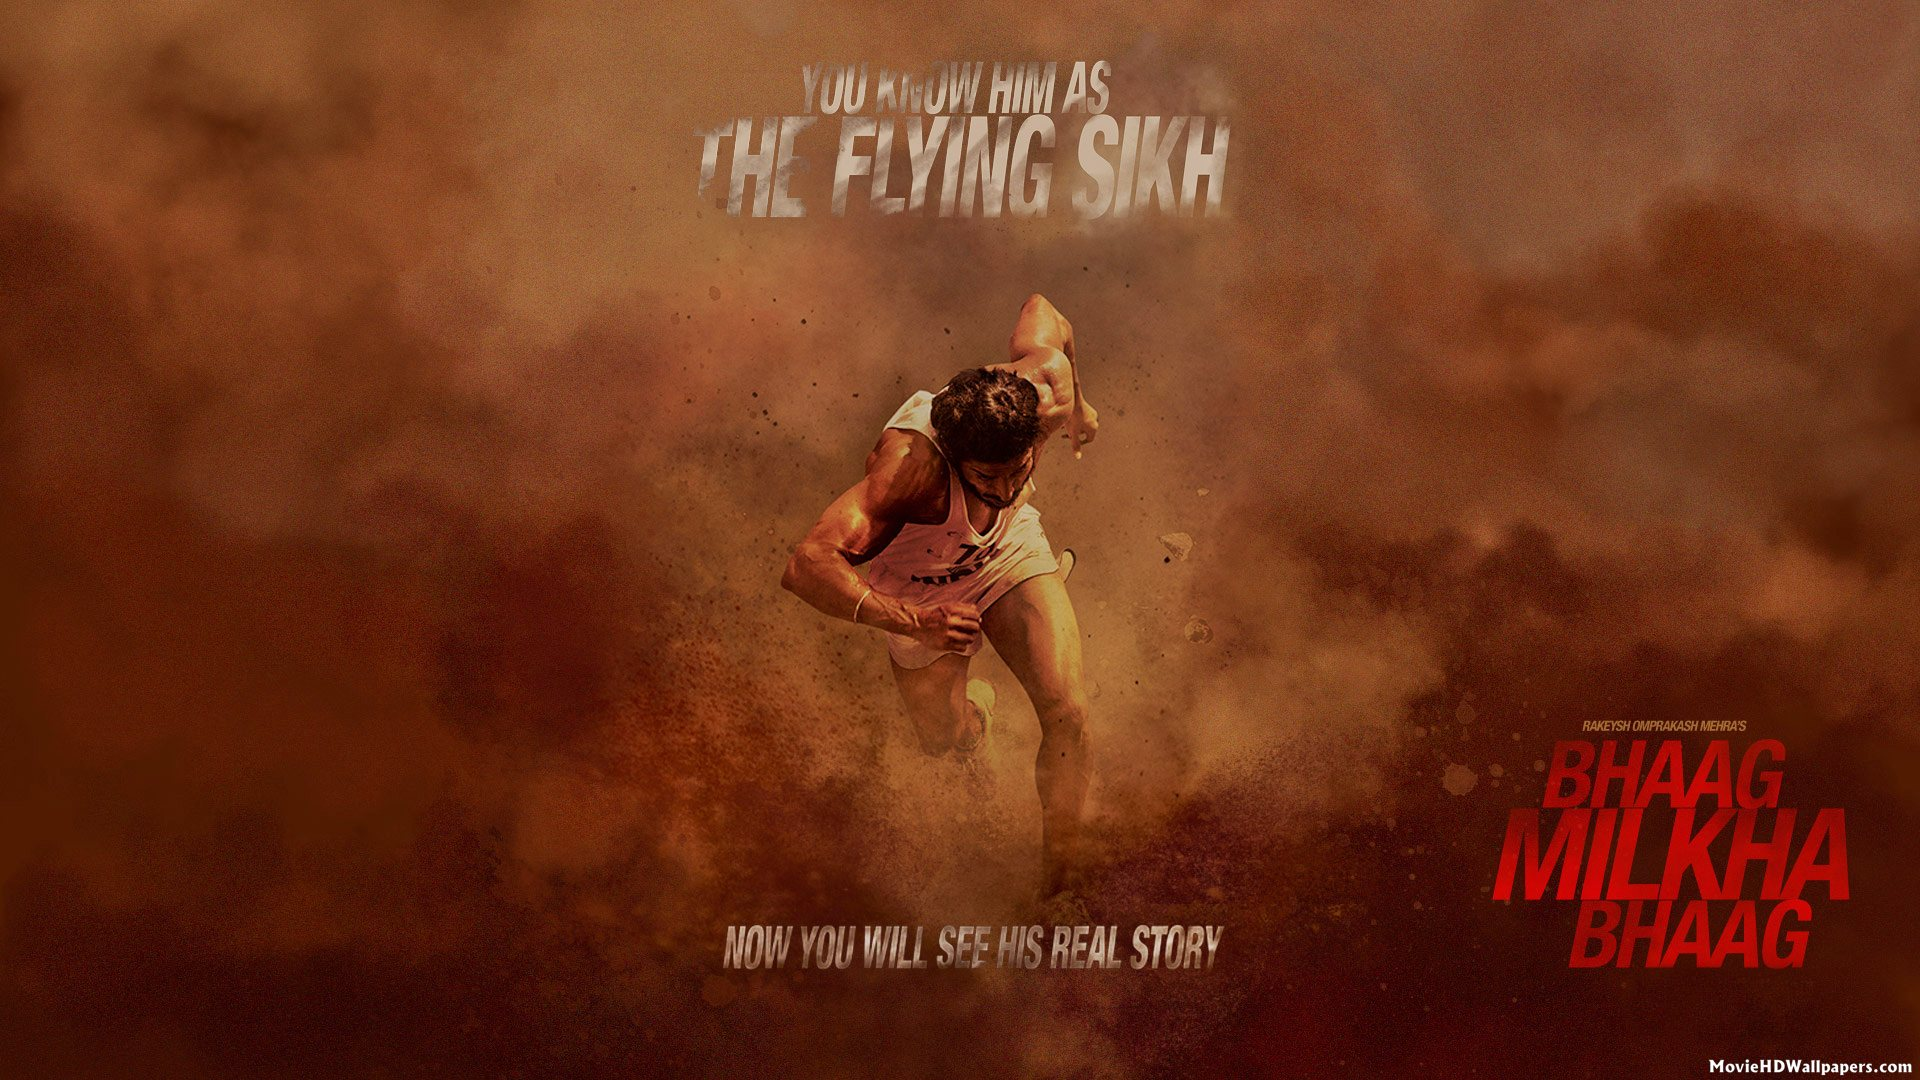 Bhaag Milkha Bhaag 2013 movie